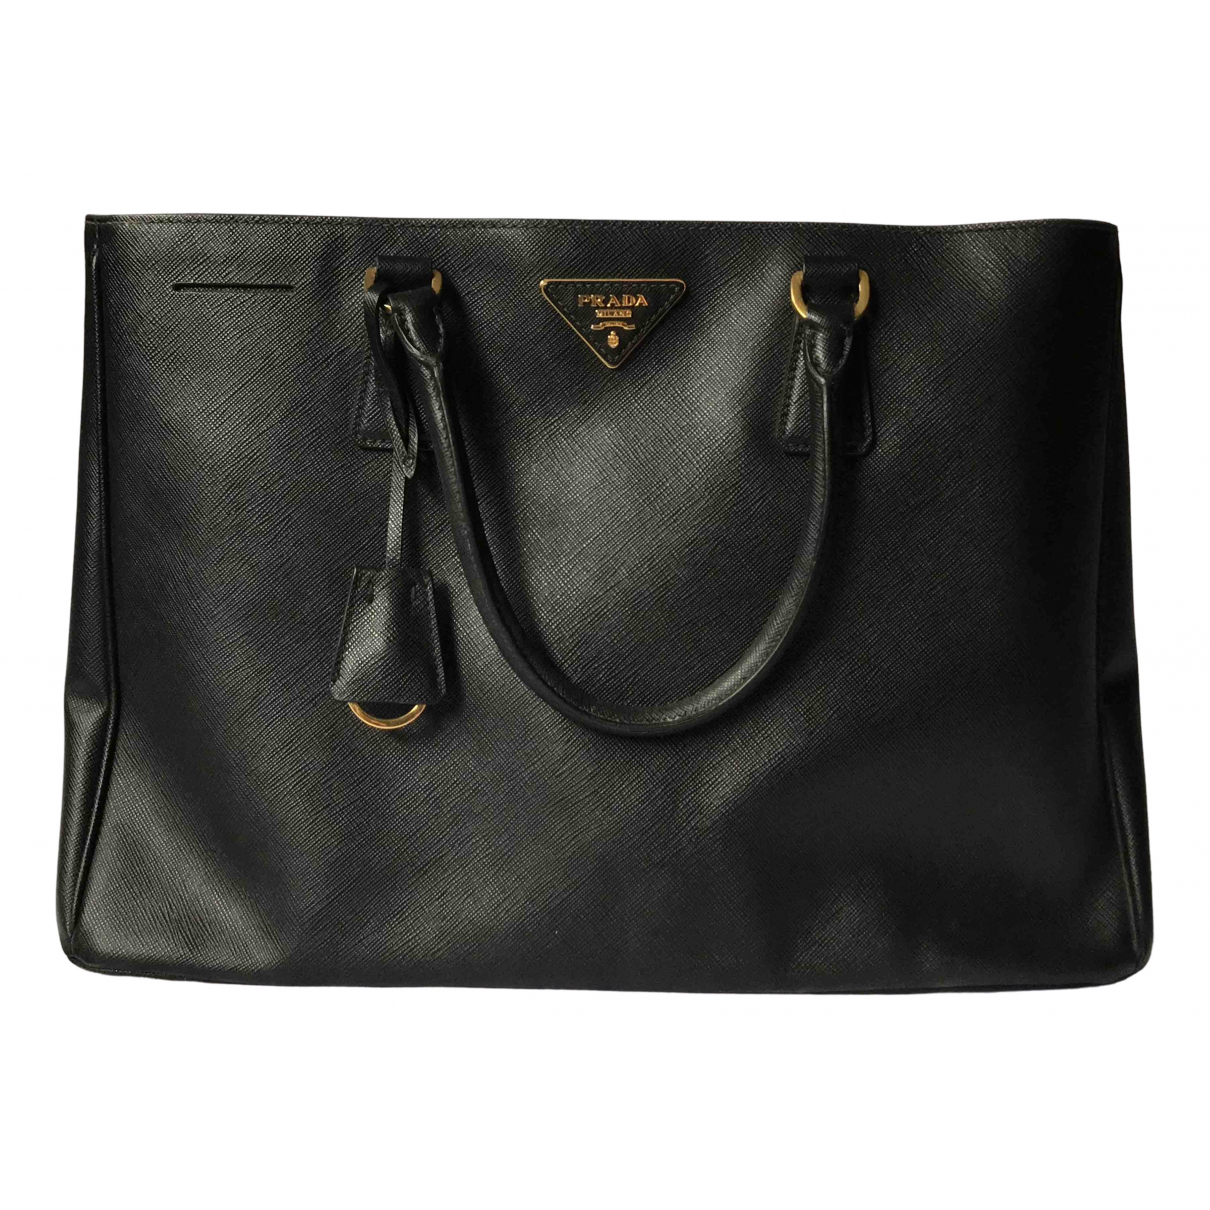 Prada saffiano  Black Leather handbag for Women \N